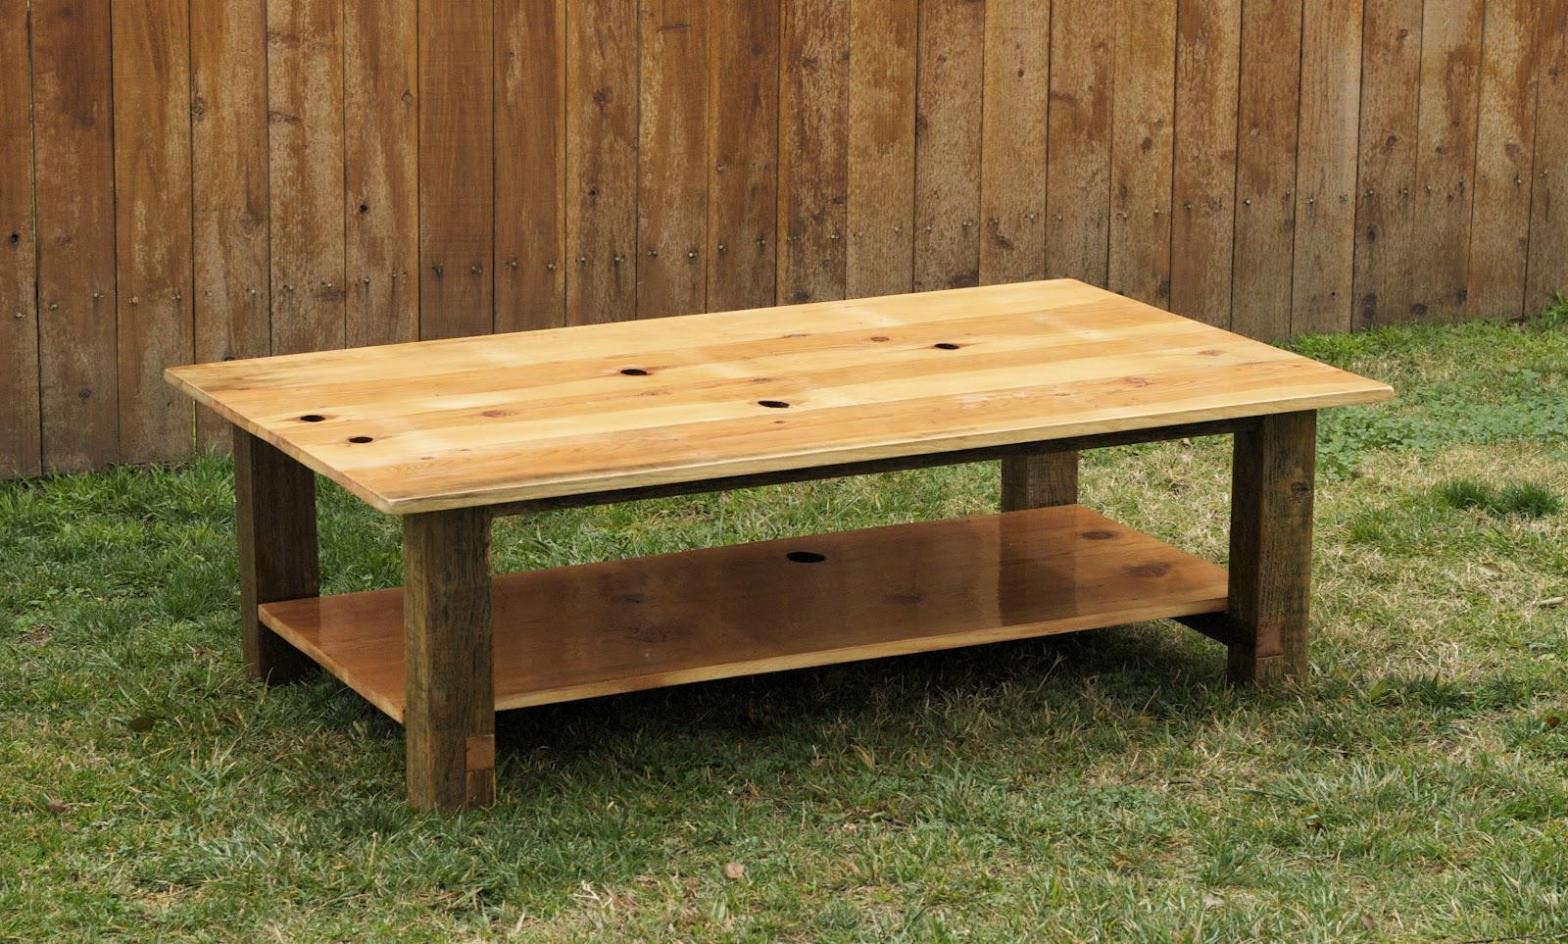 Knotty pine coffee table design ideas